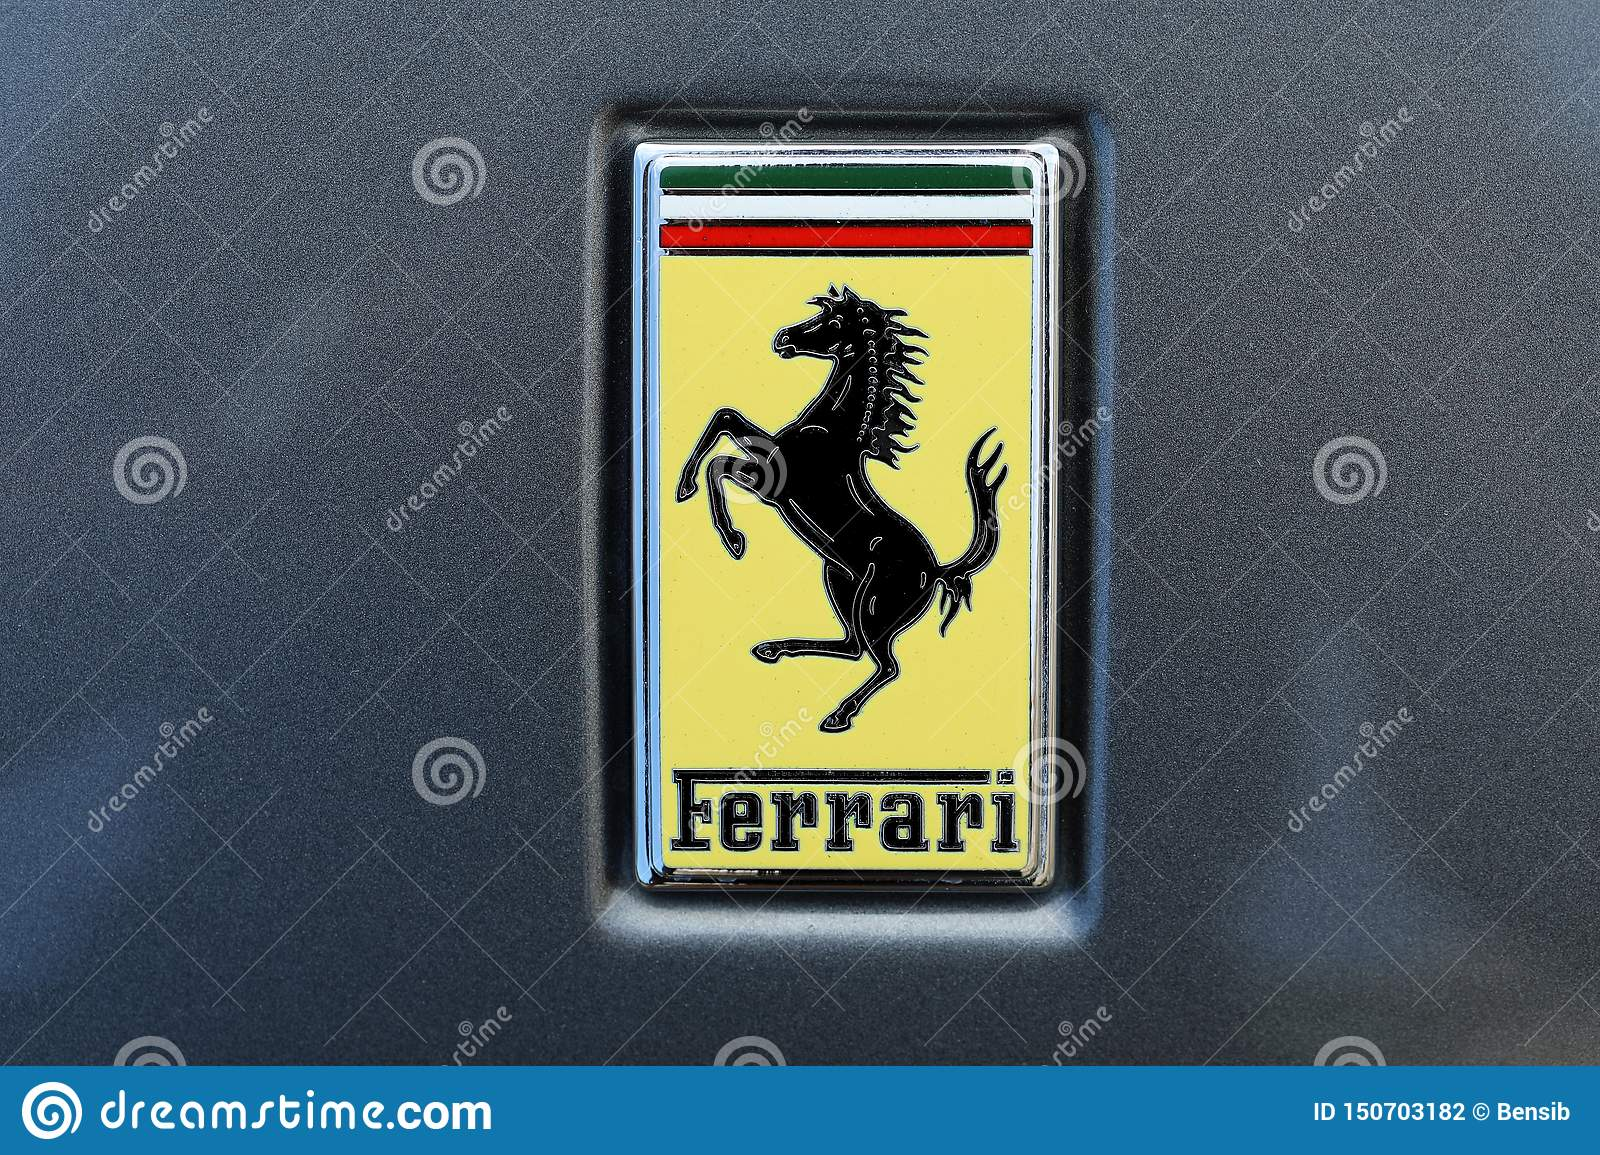 337 Ferrari Horse Prancing Photos Free Royalty Free Stock Photos From Dreamstime